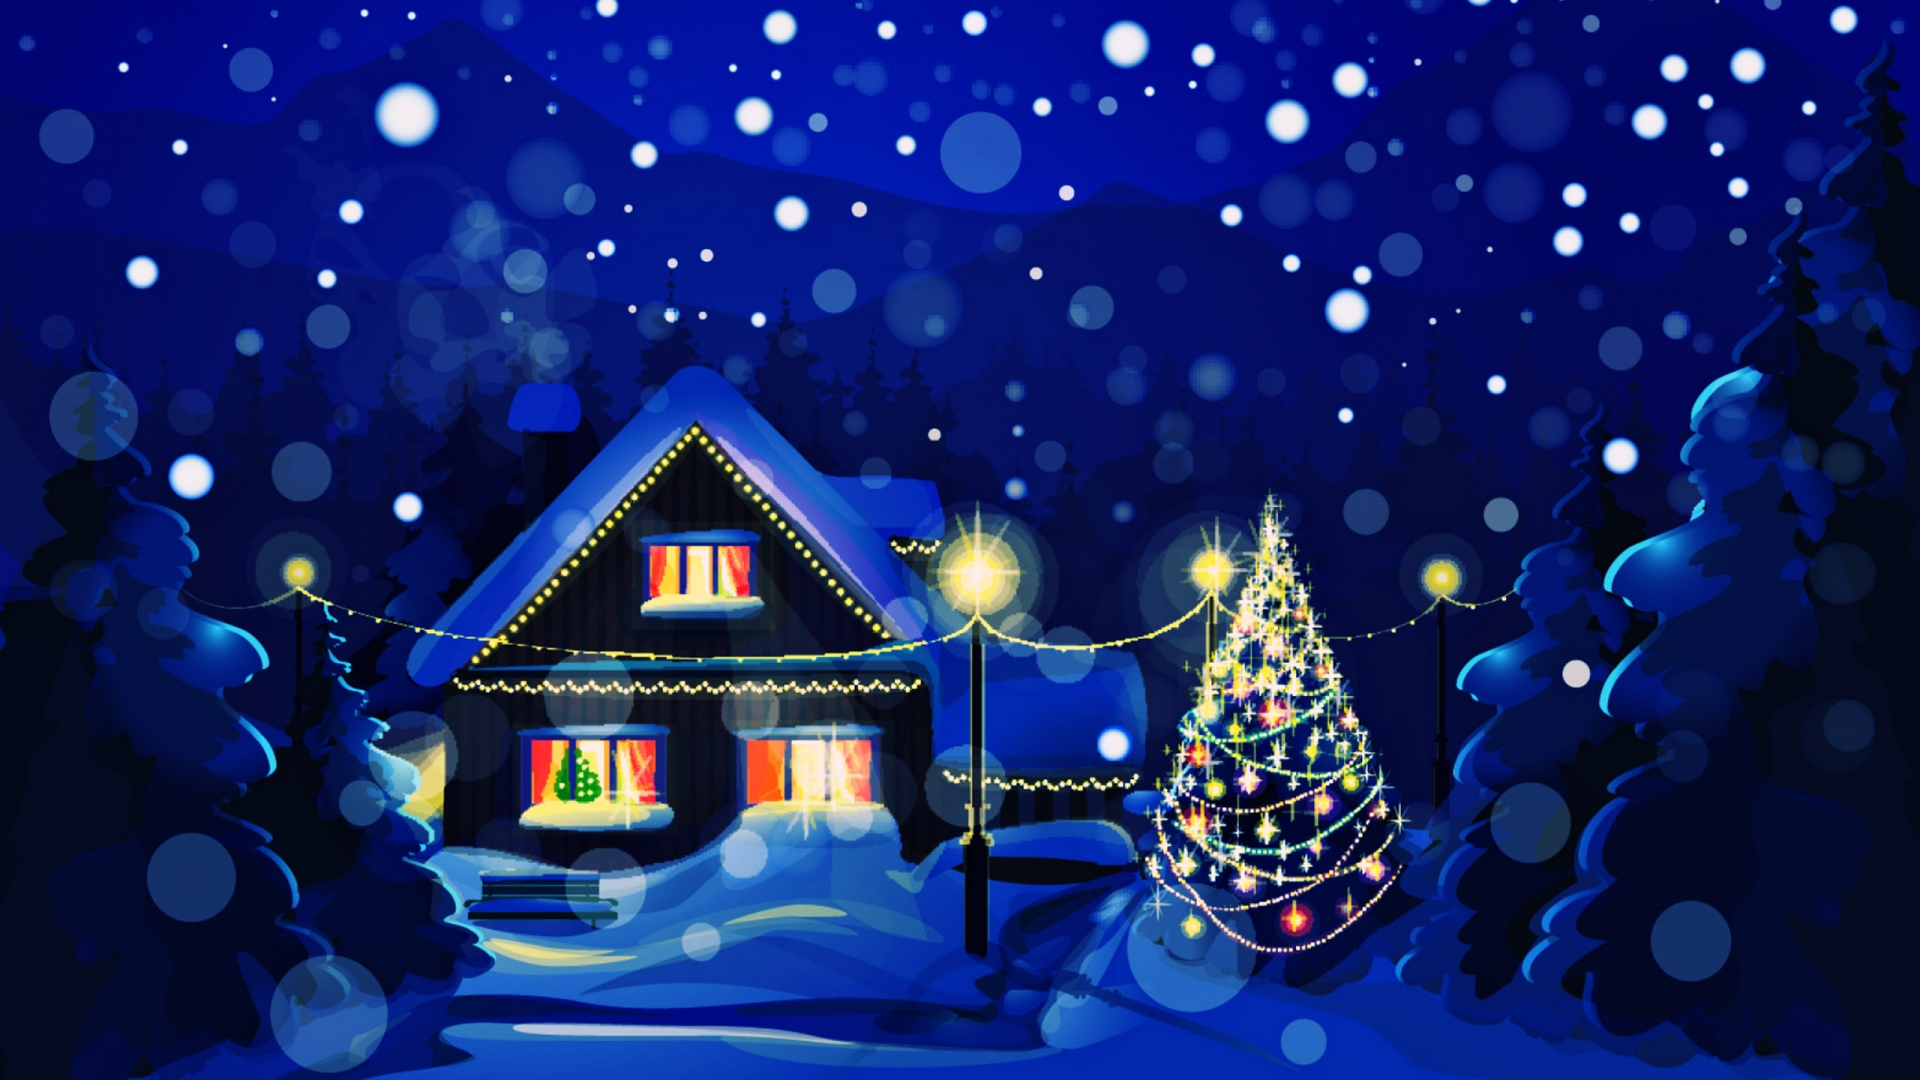 Christmas Winter 1080p Hd Wallpaper Wallpapers 1920x1080